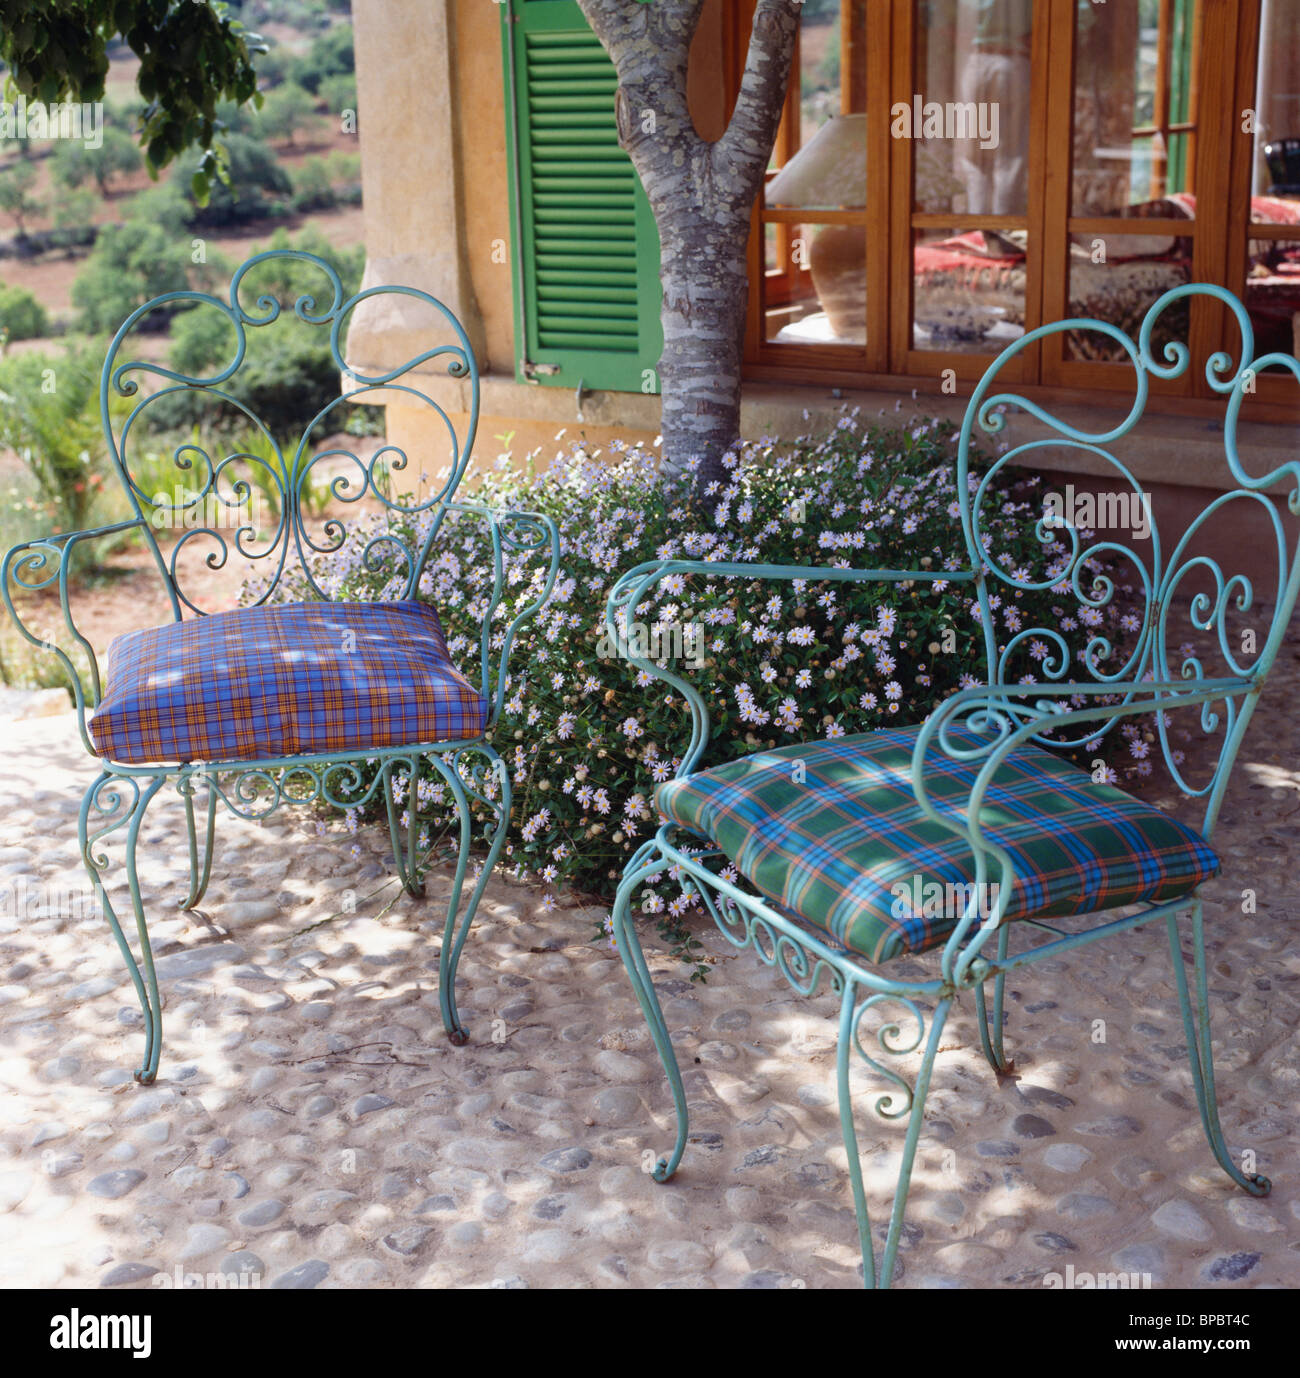 Checked Cushions On Ornate Green Wrought Iron Chairs In Shady Pebble Paved  Seating Area With Geranium Under Planted Below Tree